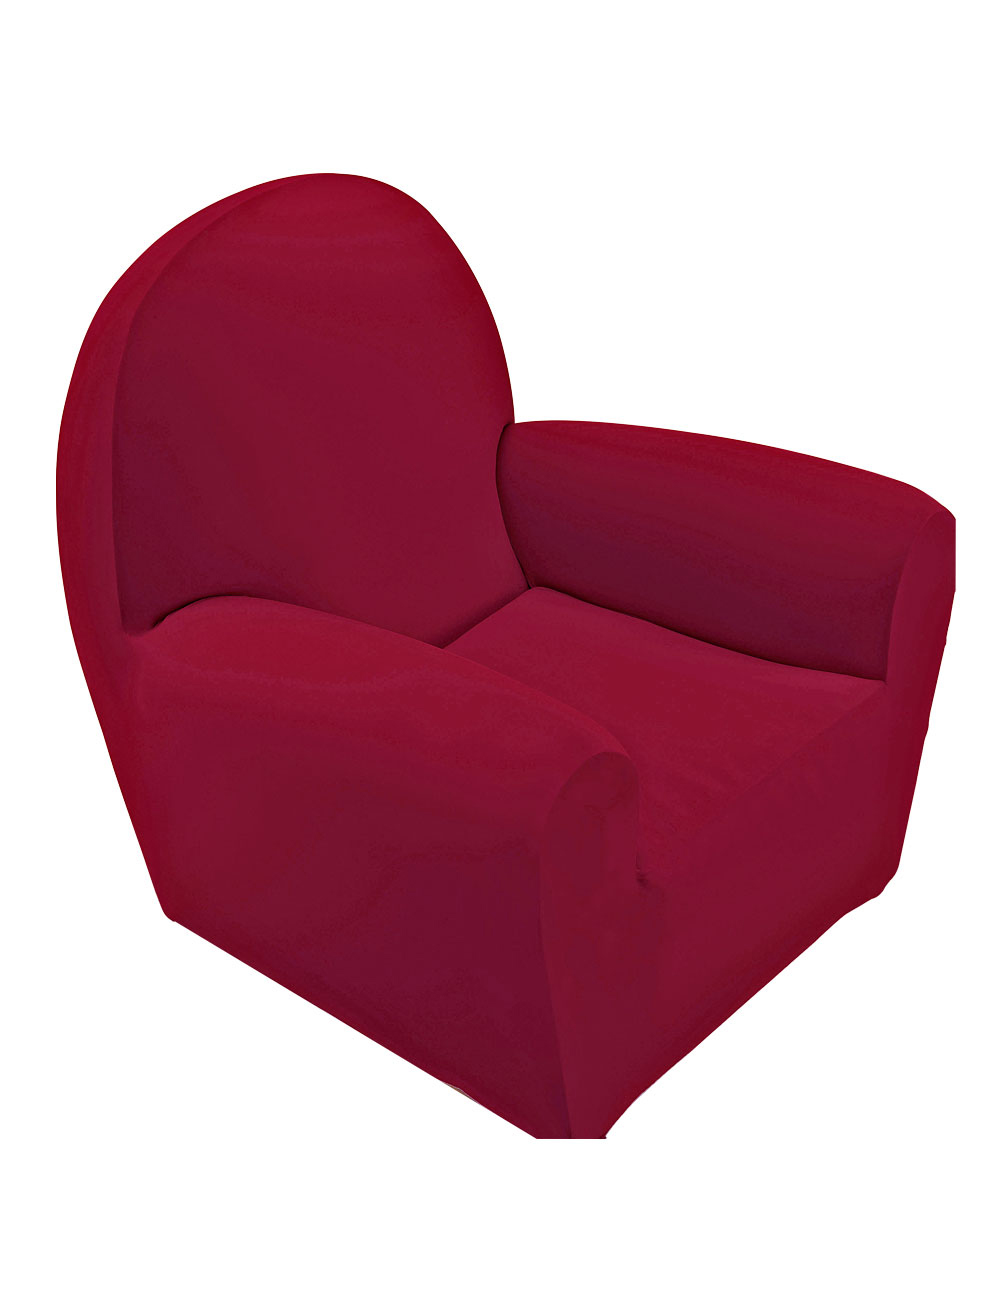 housse bi lastique pour fauteuil relax rouge. Black Bedroom Furniture Sets. Home Design Ideas